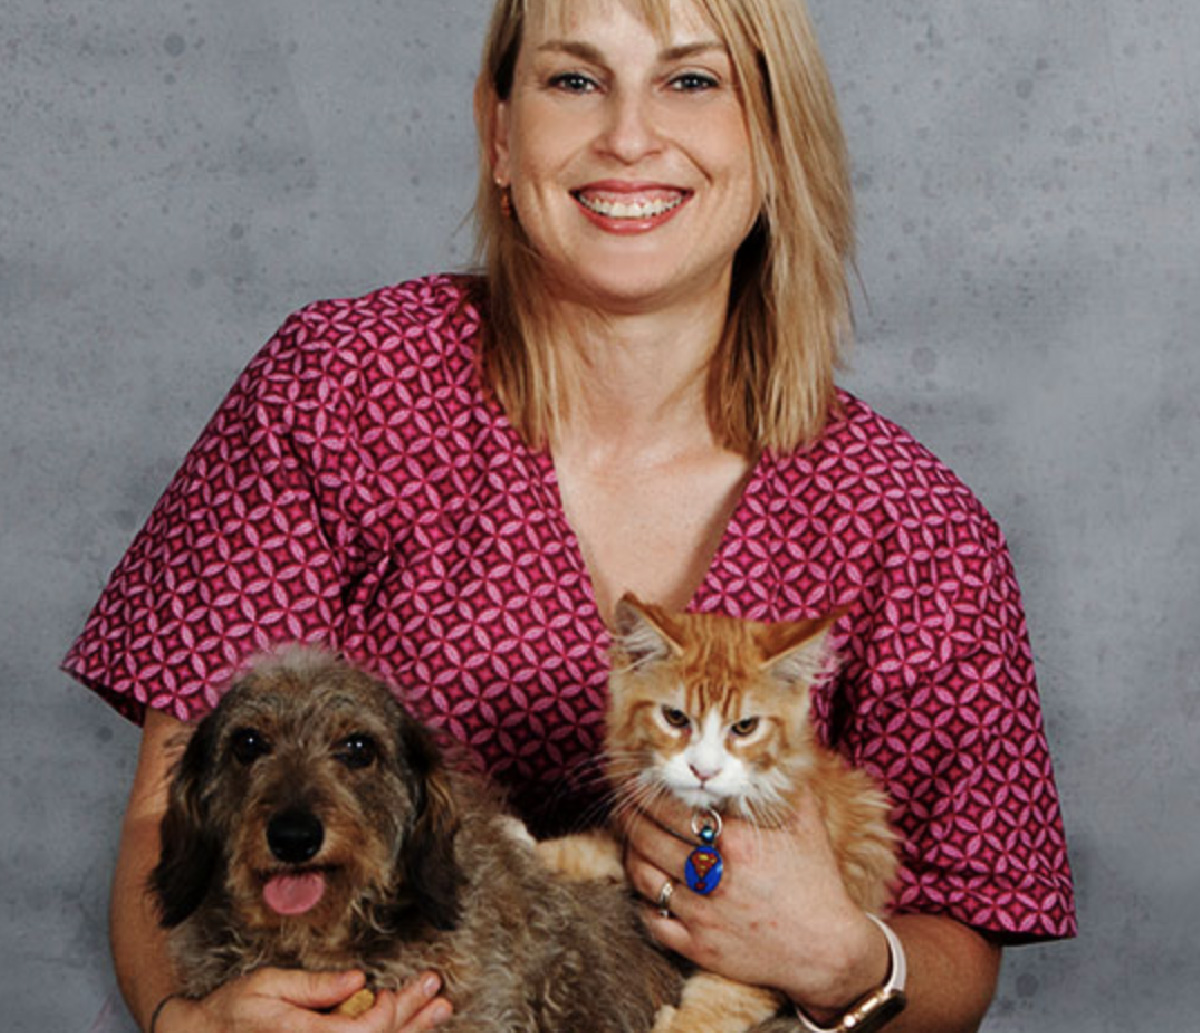 RCL - Ultra Pet | Karien with cat and dog